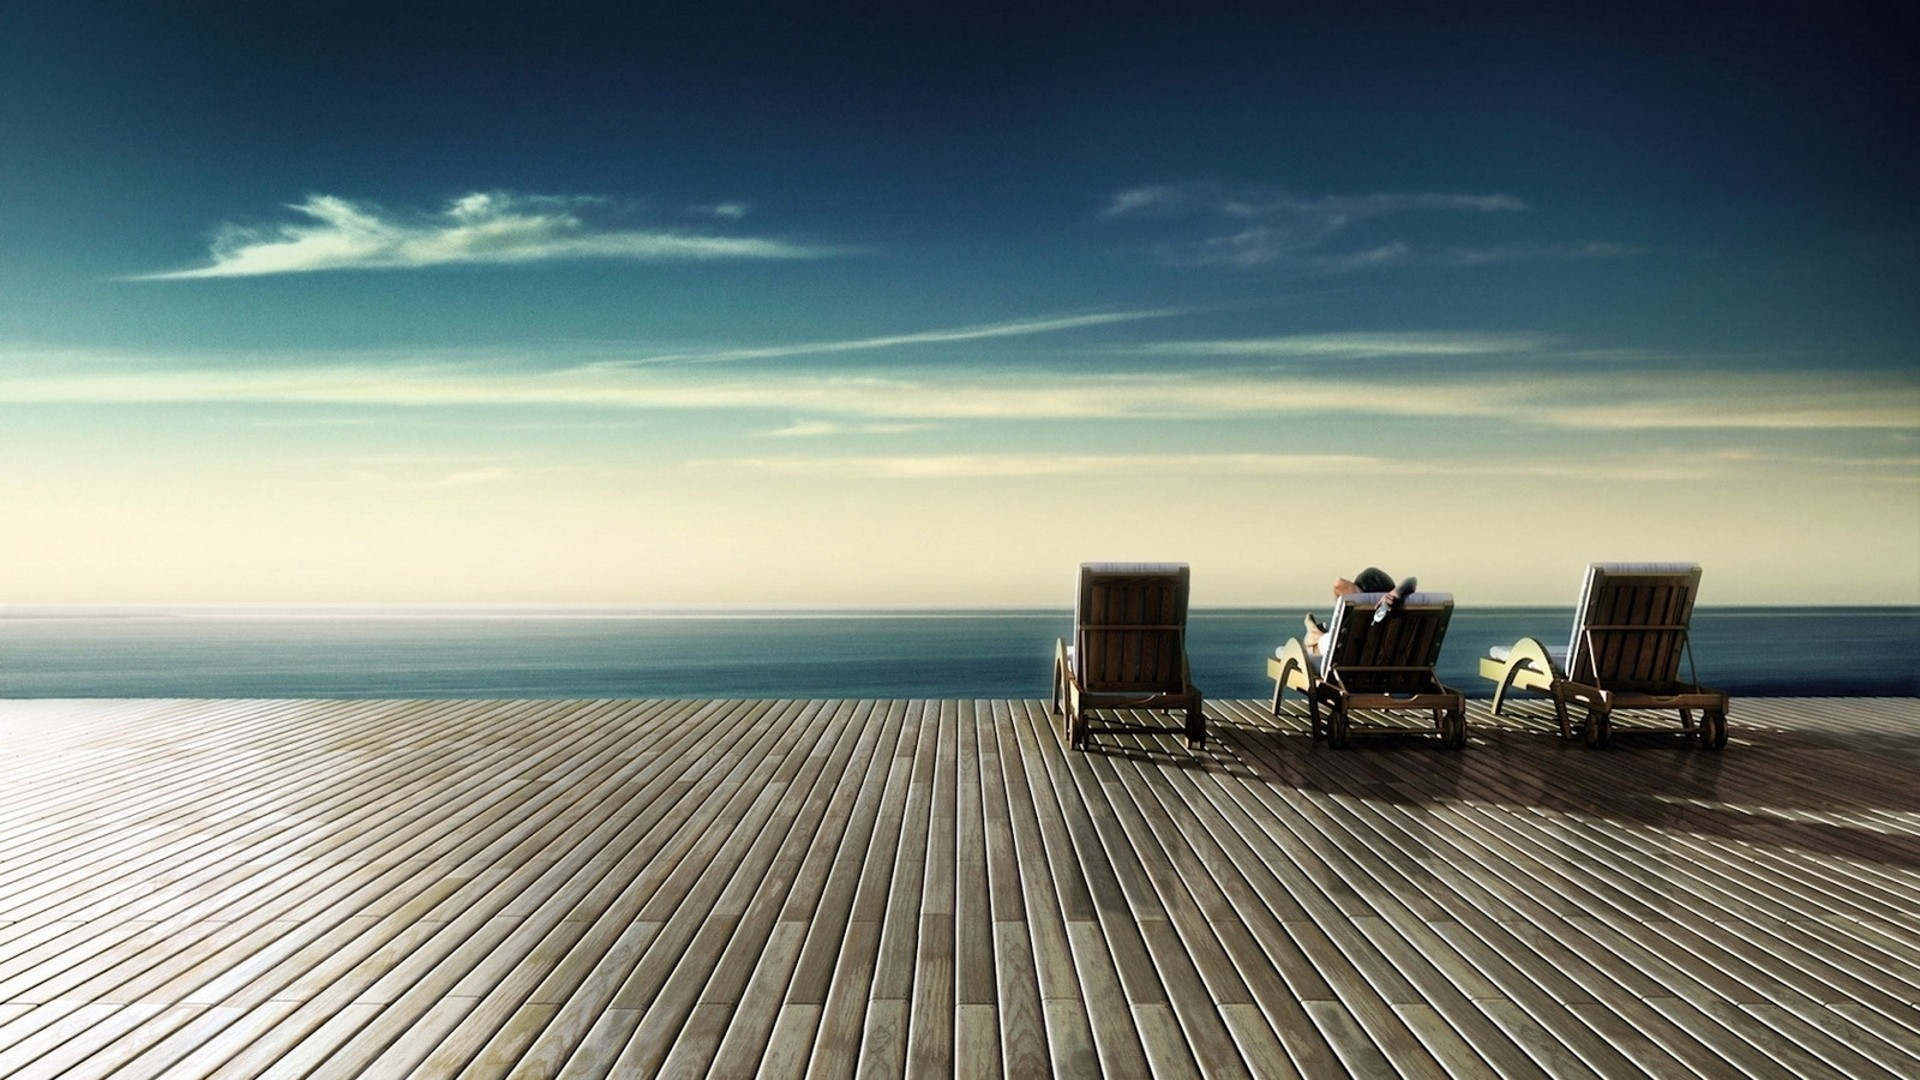 Relax Wallpapers HD Wallpapers 1920x1080